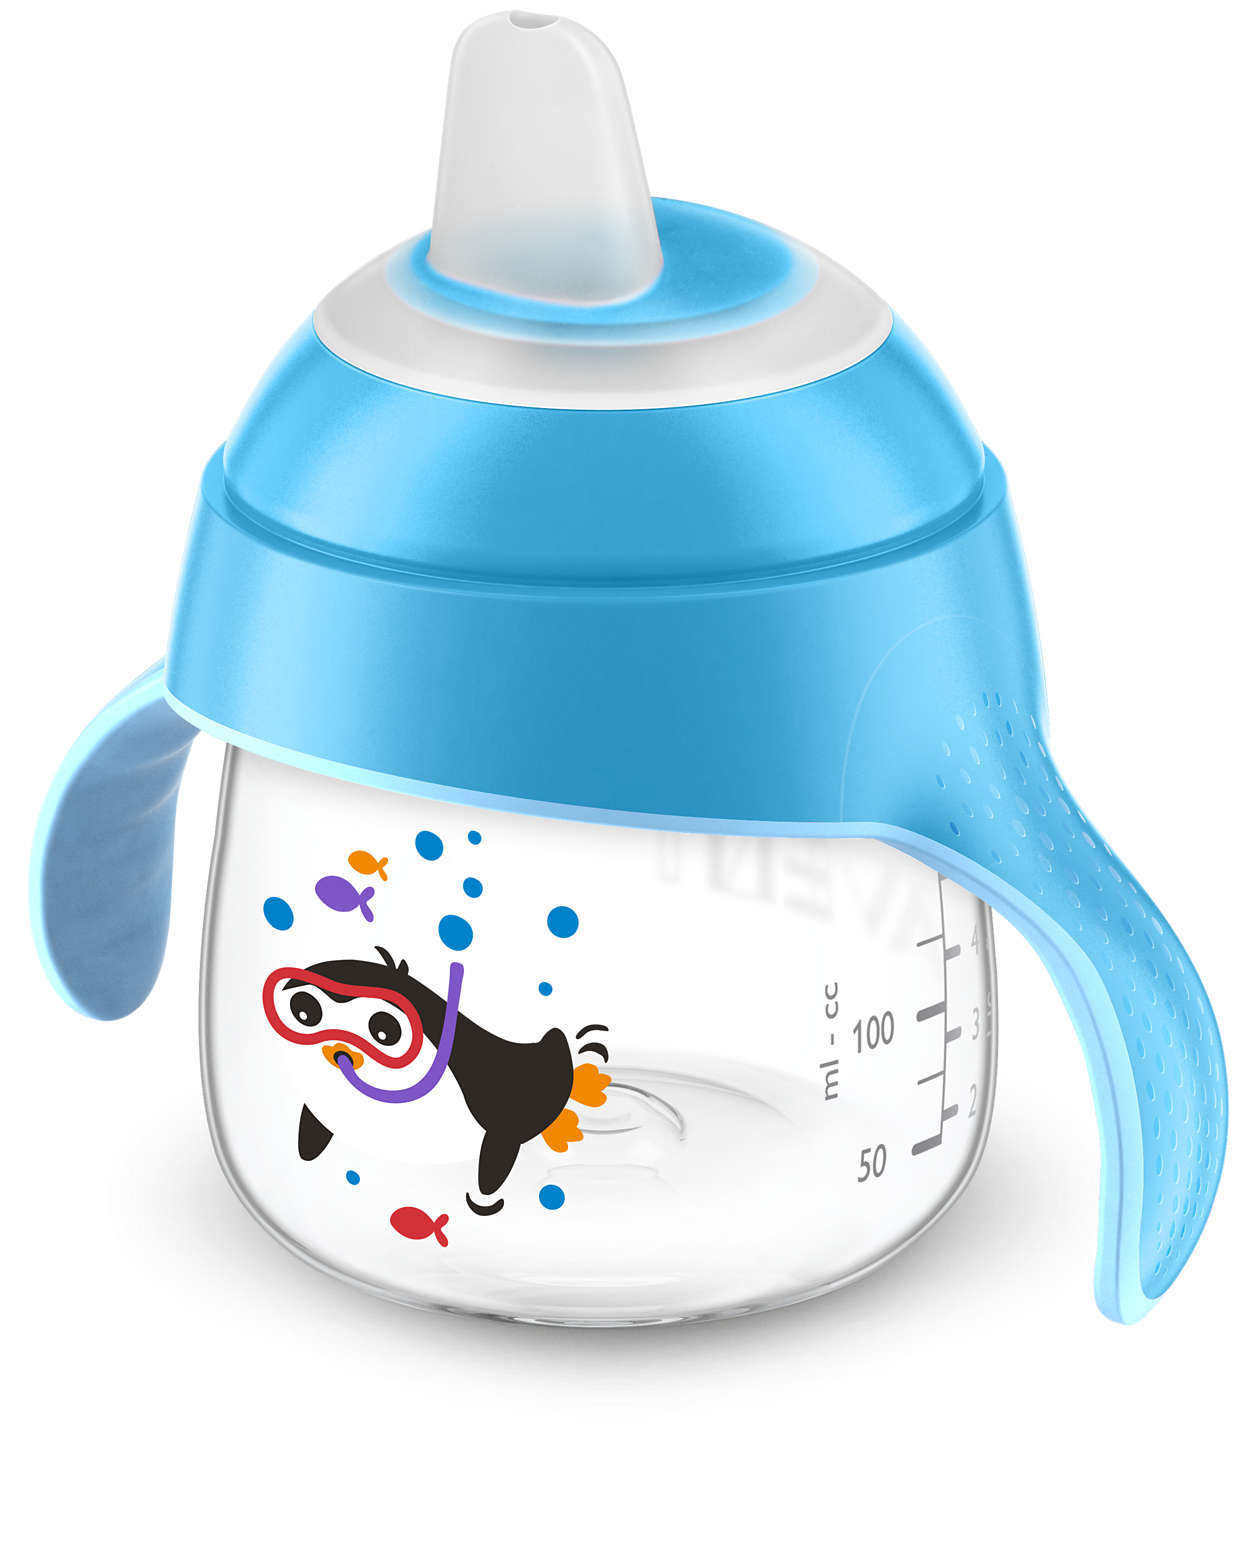 Philips Avent Sip, No Drip Cup - 200ml 6m+ (Blue) image